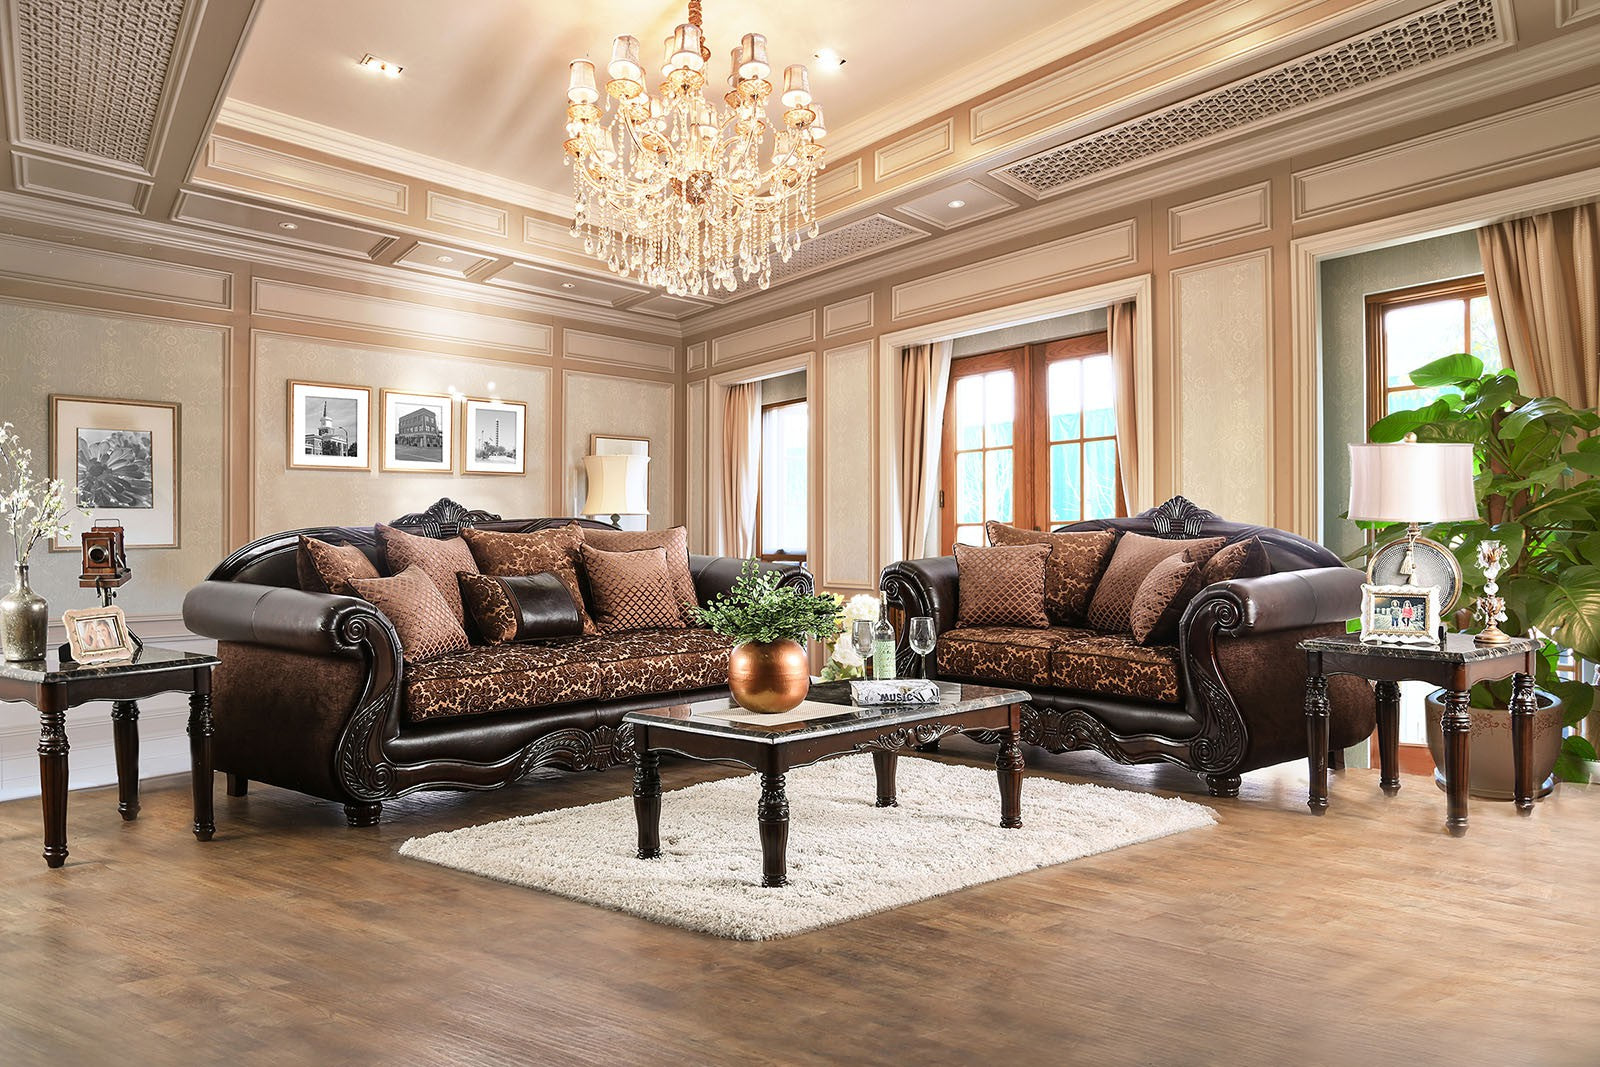 ELPIS 2PC SOFA & LOVESEAT SET